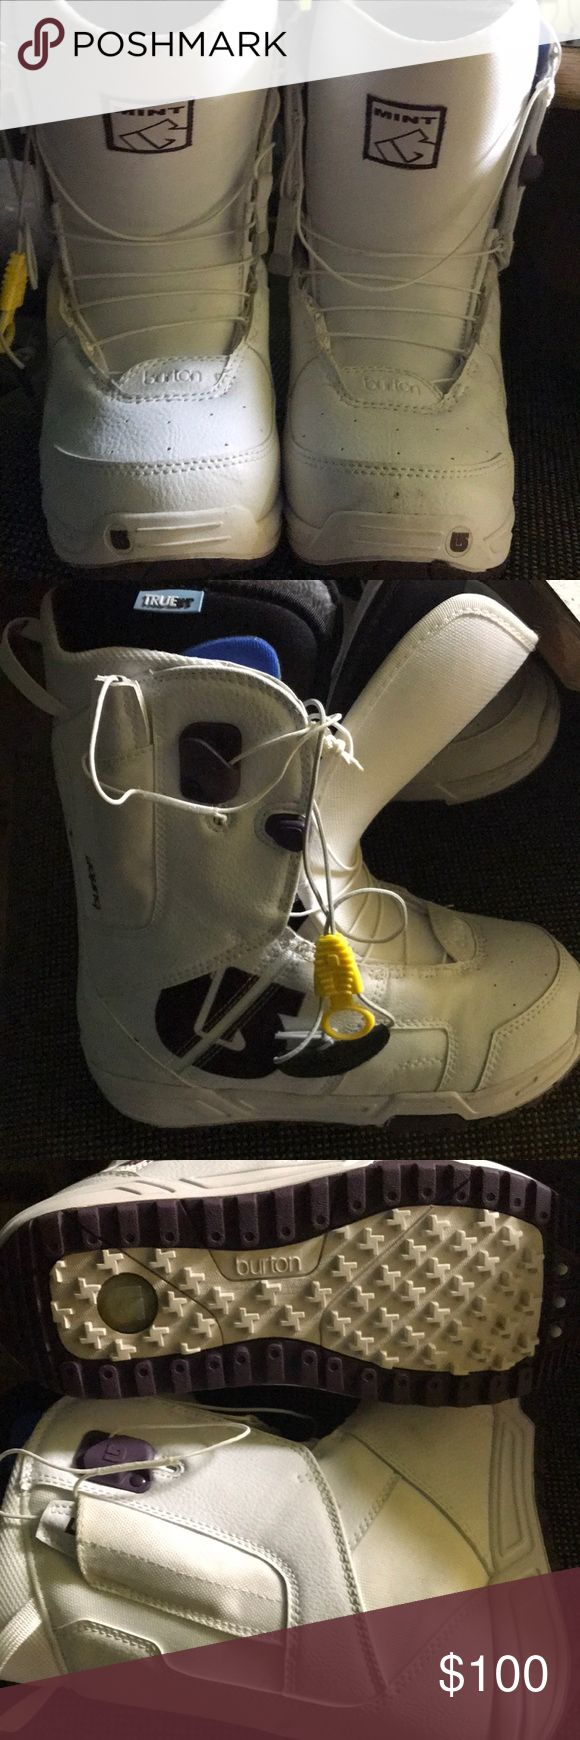 Burton snowboard boots Only worn once. Great condition. Burton Shoes